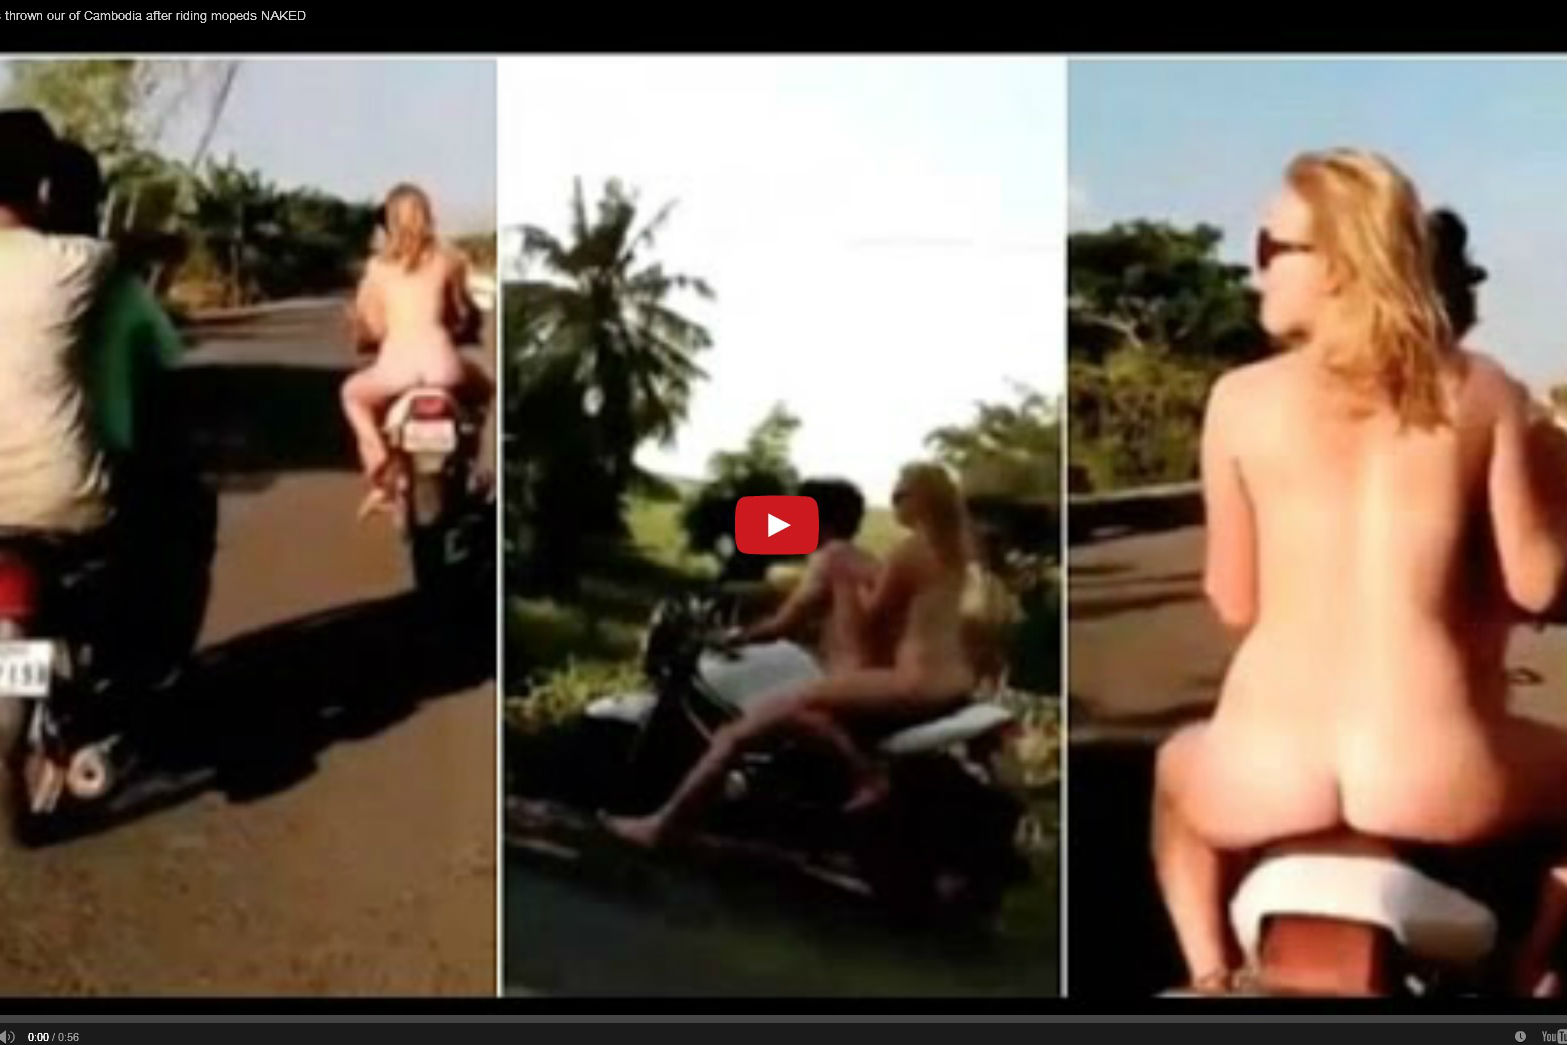 Video: Briton to be deported from Cambodia for riding motorcycle naked